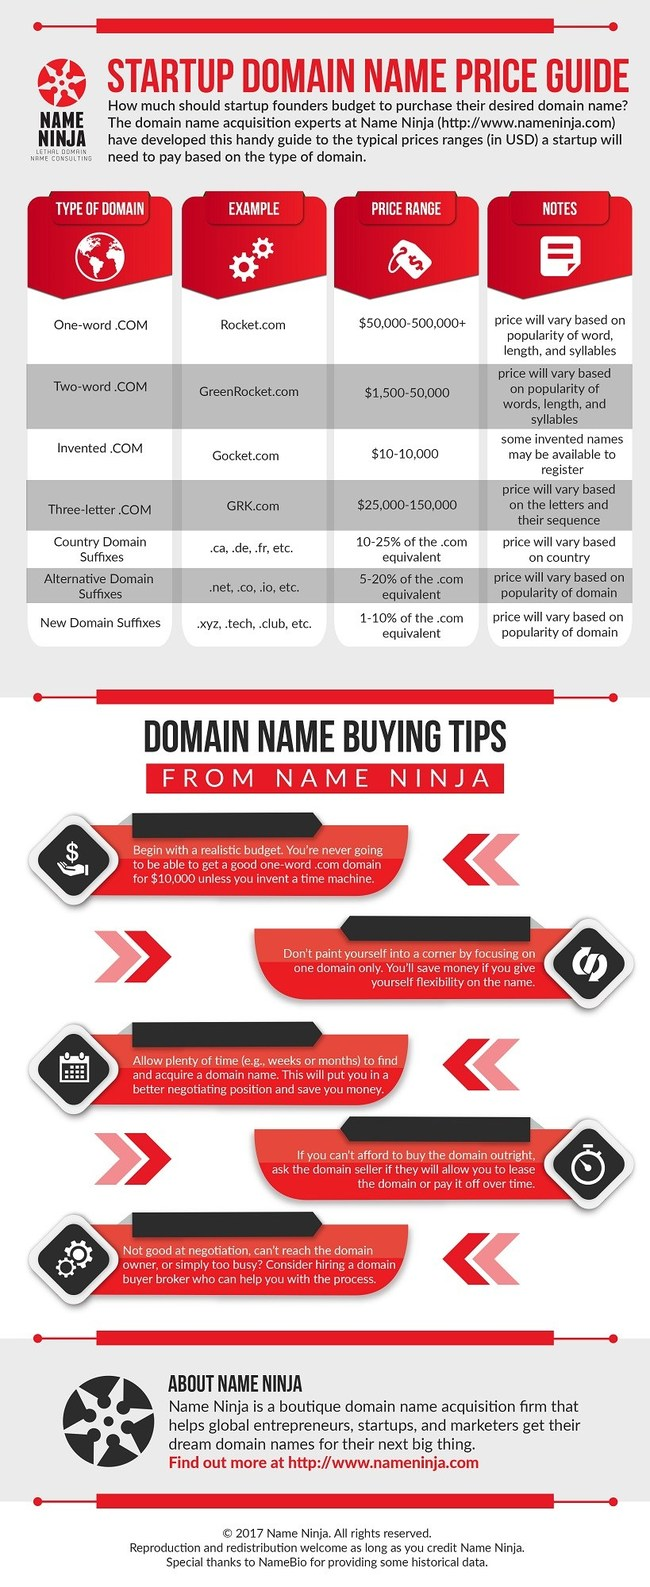 Name Ninja's Startup Domain Name Price Guide